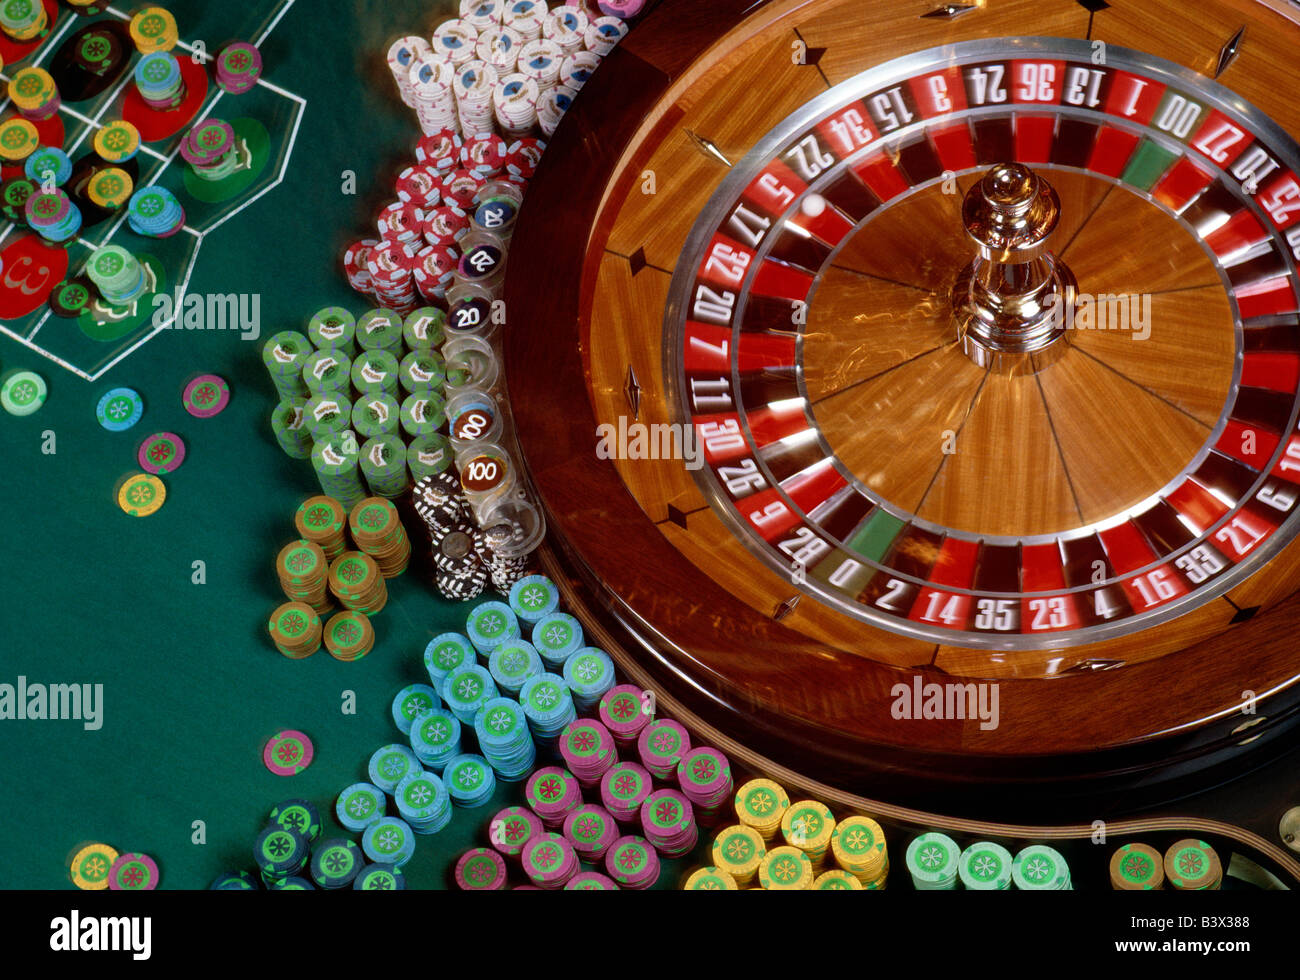 Roulette wheel and table with chips in an Atlantic City, New Jersey, casino - Stock Image